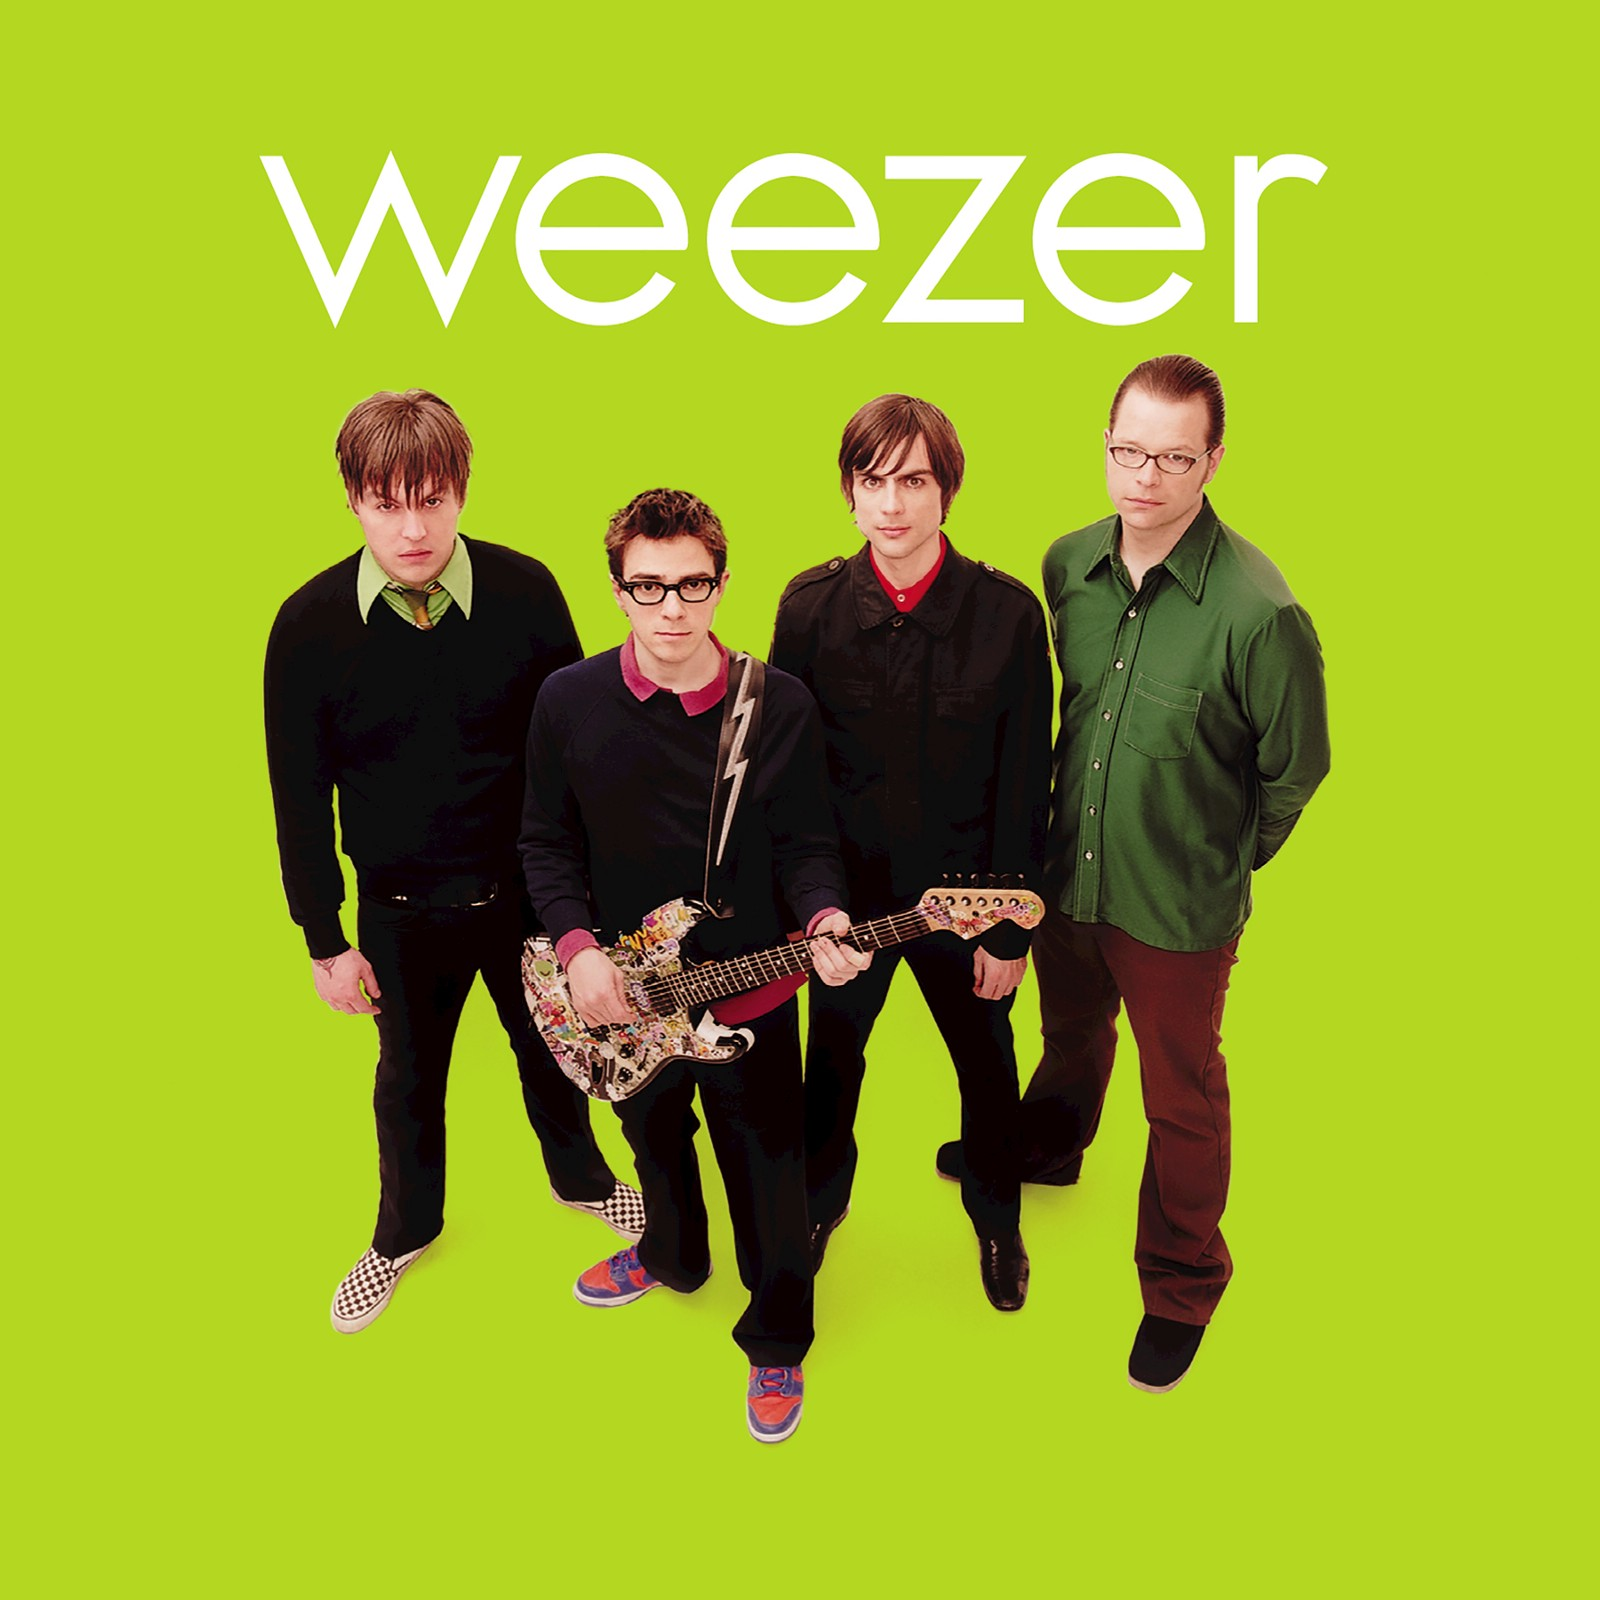 Tired of sex weezer